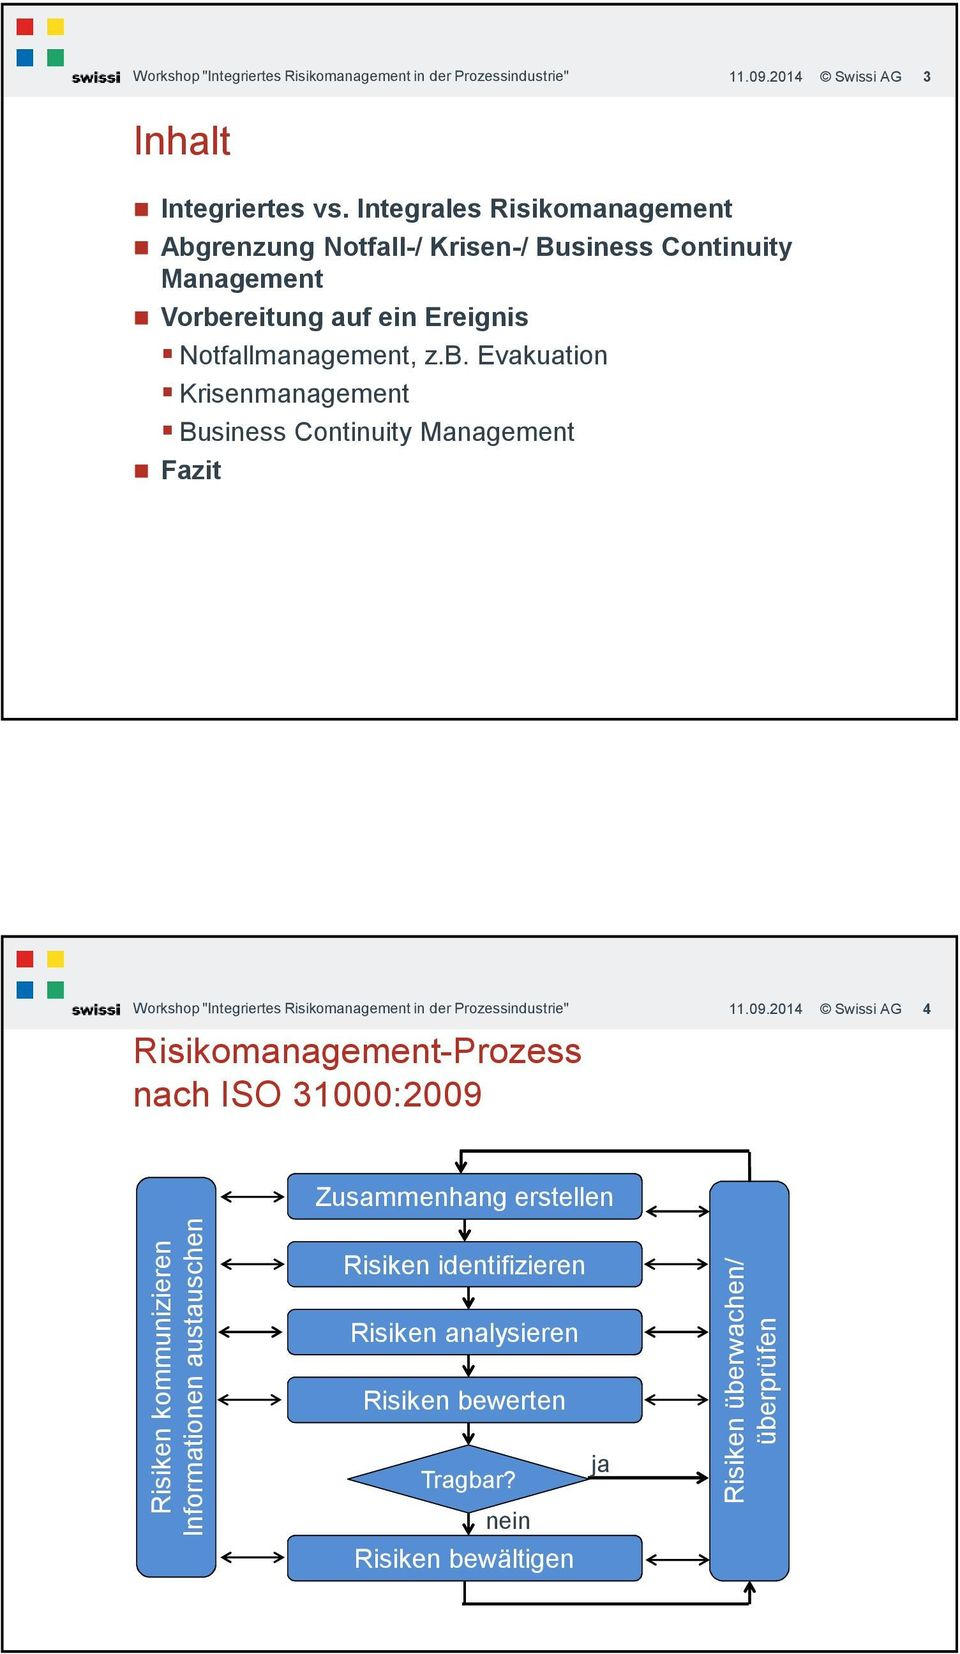 renzung Notfall-/ Krisen-/ Business Continuity Management Vorbe